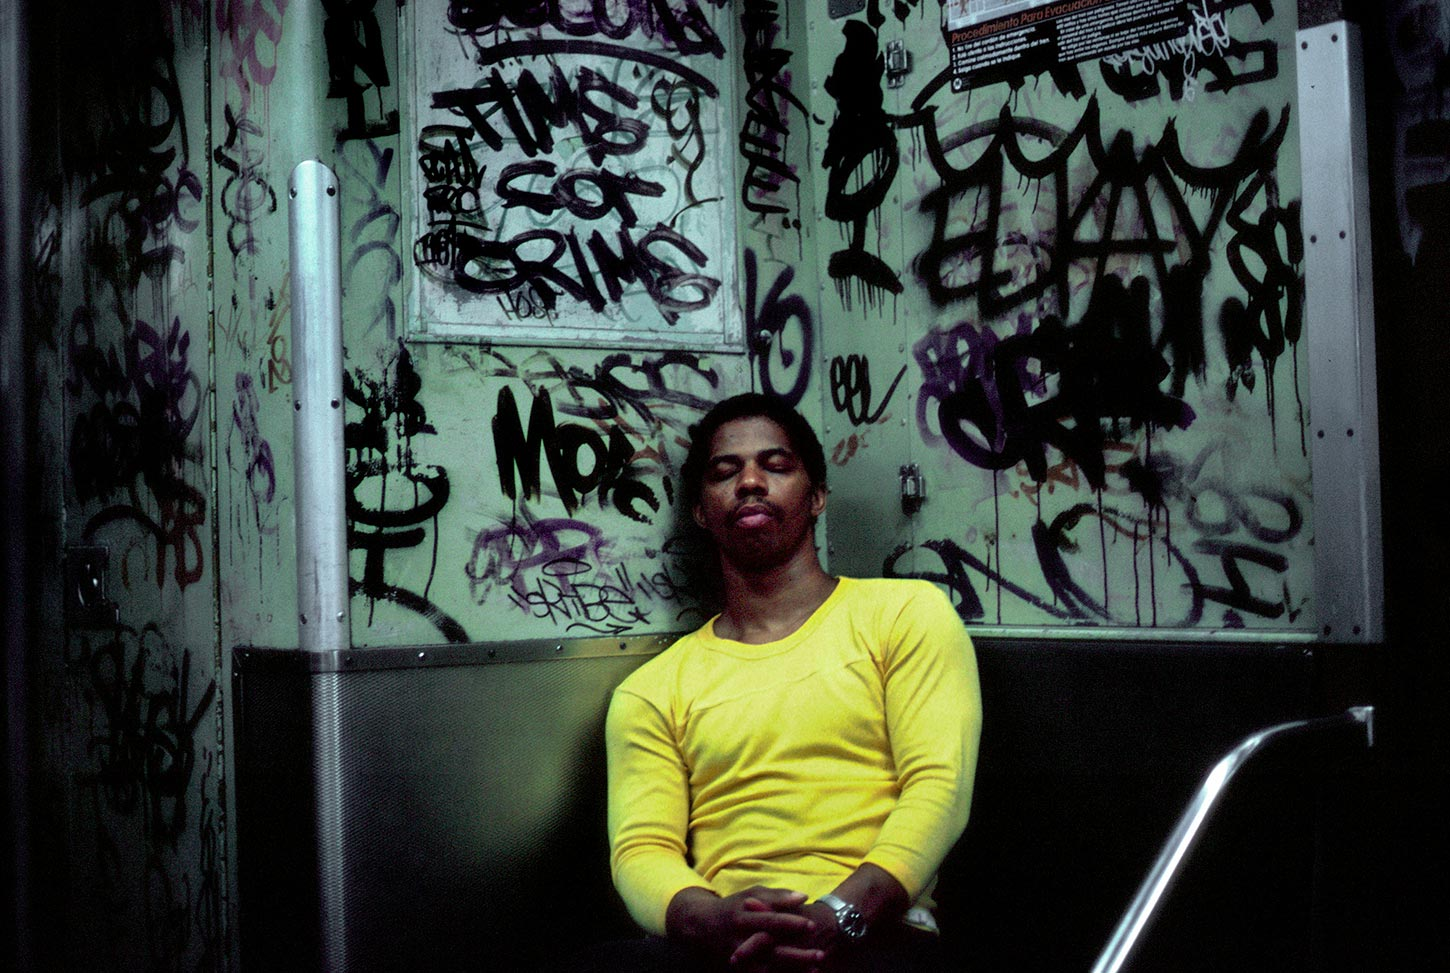 Young man in subway. USA. 1985.